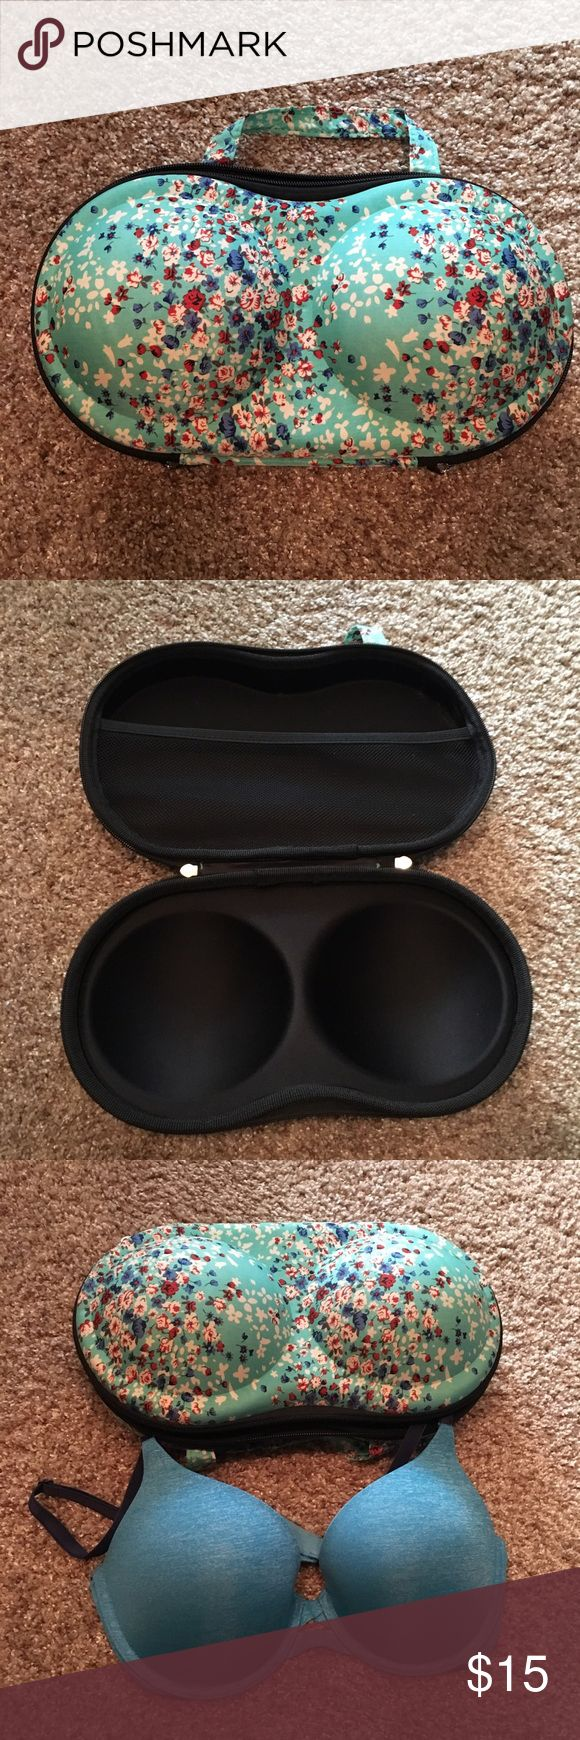 Bra luggage organizer NWOT bra luggage organizer. Fits about 2-3 bras and there's a mesh pocket to put your undies and/or socks. Too small for my bras, but I tried. Works for C cups and under. Other